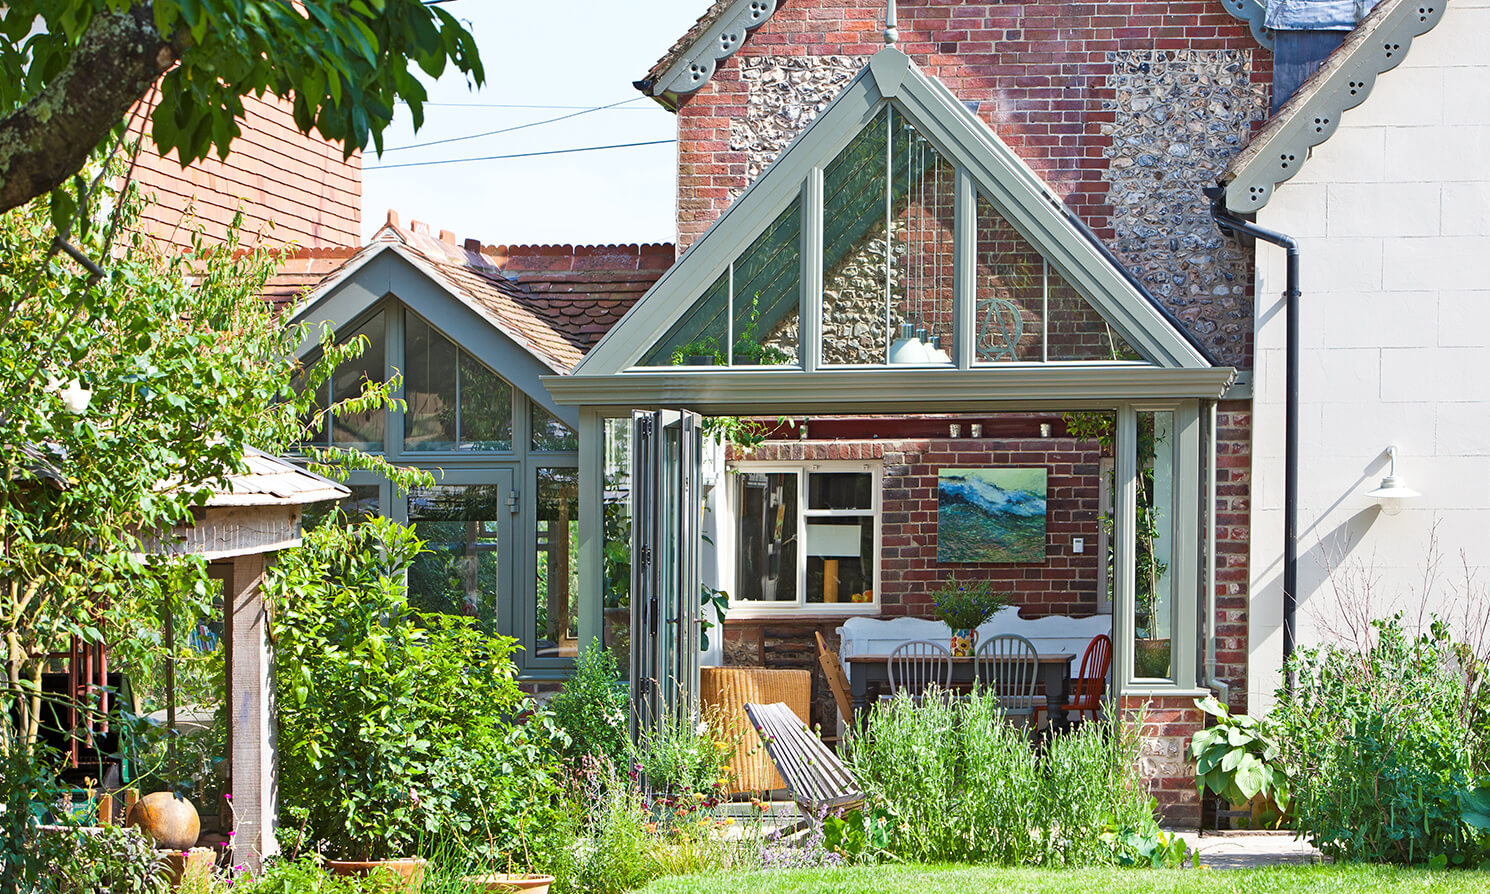 Bi-fold doors have really opened up the ground floor of this cottage